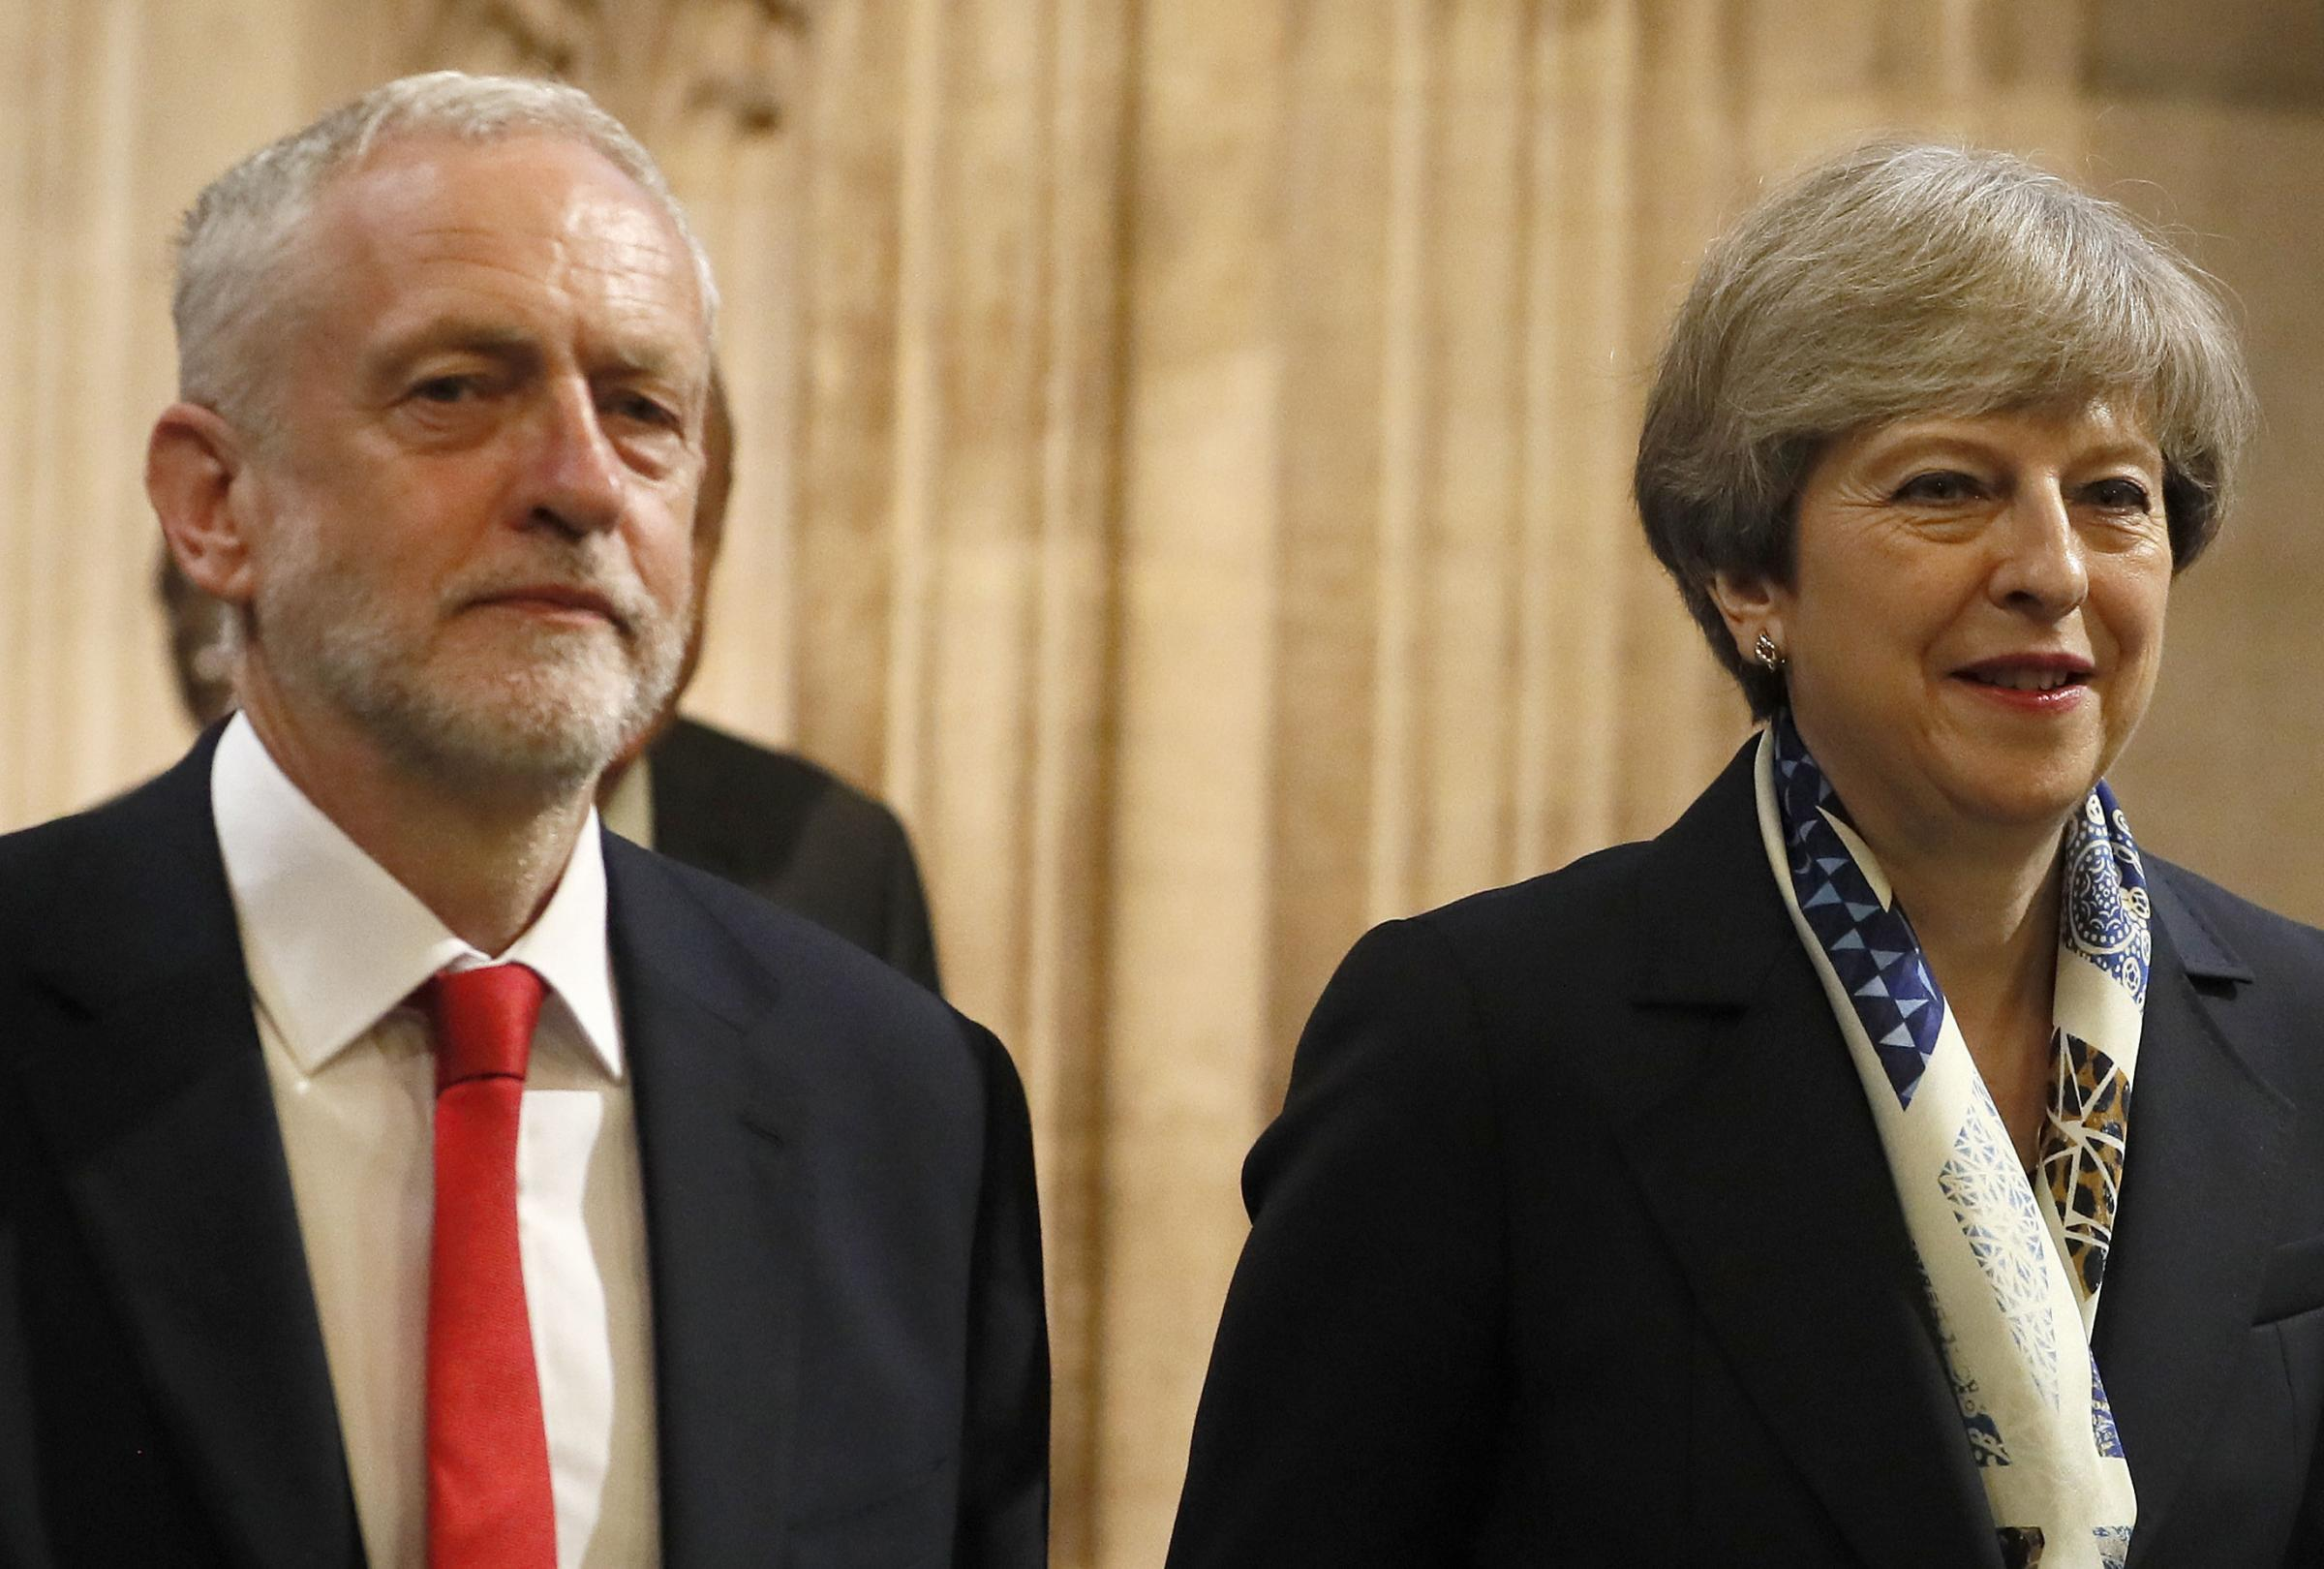 Theresa May and Jeremy Corbyn are part of a legacy that has failed us